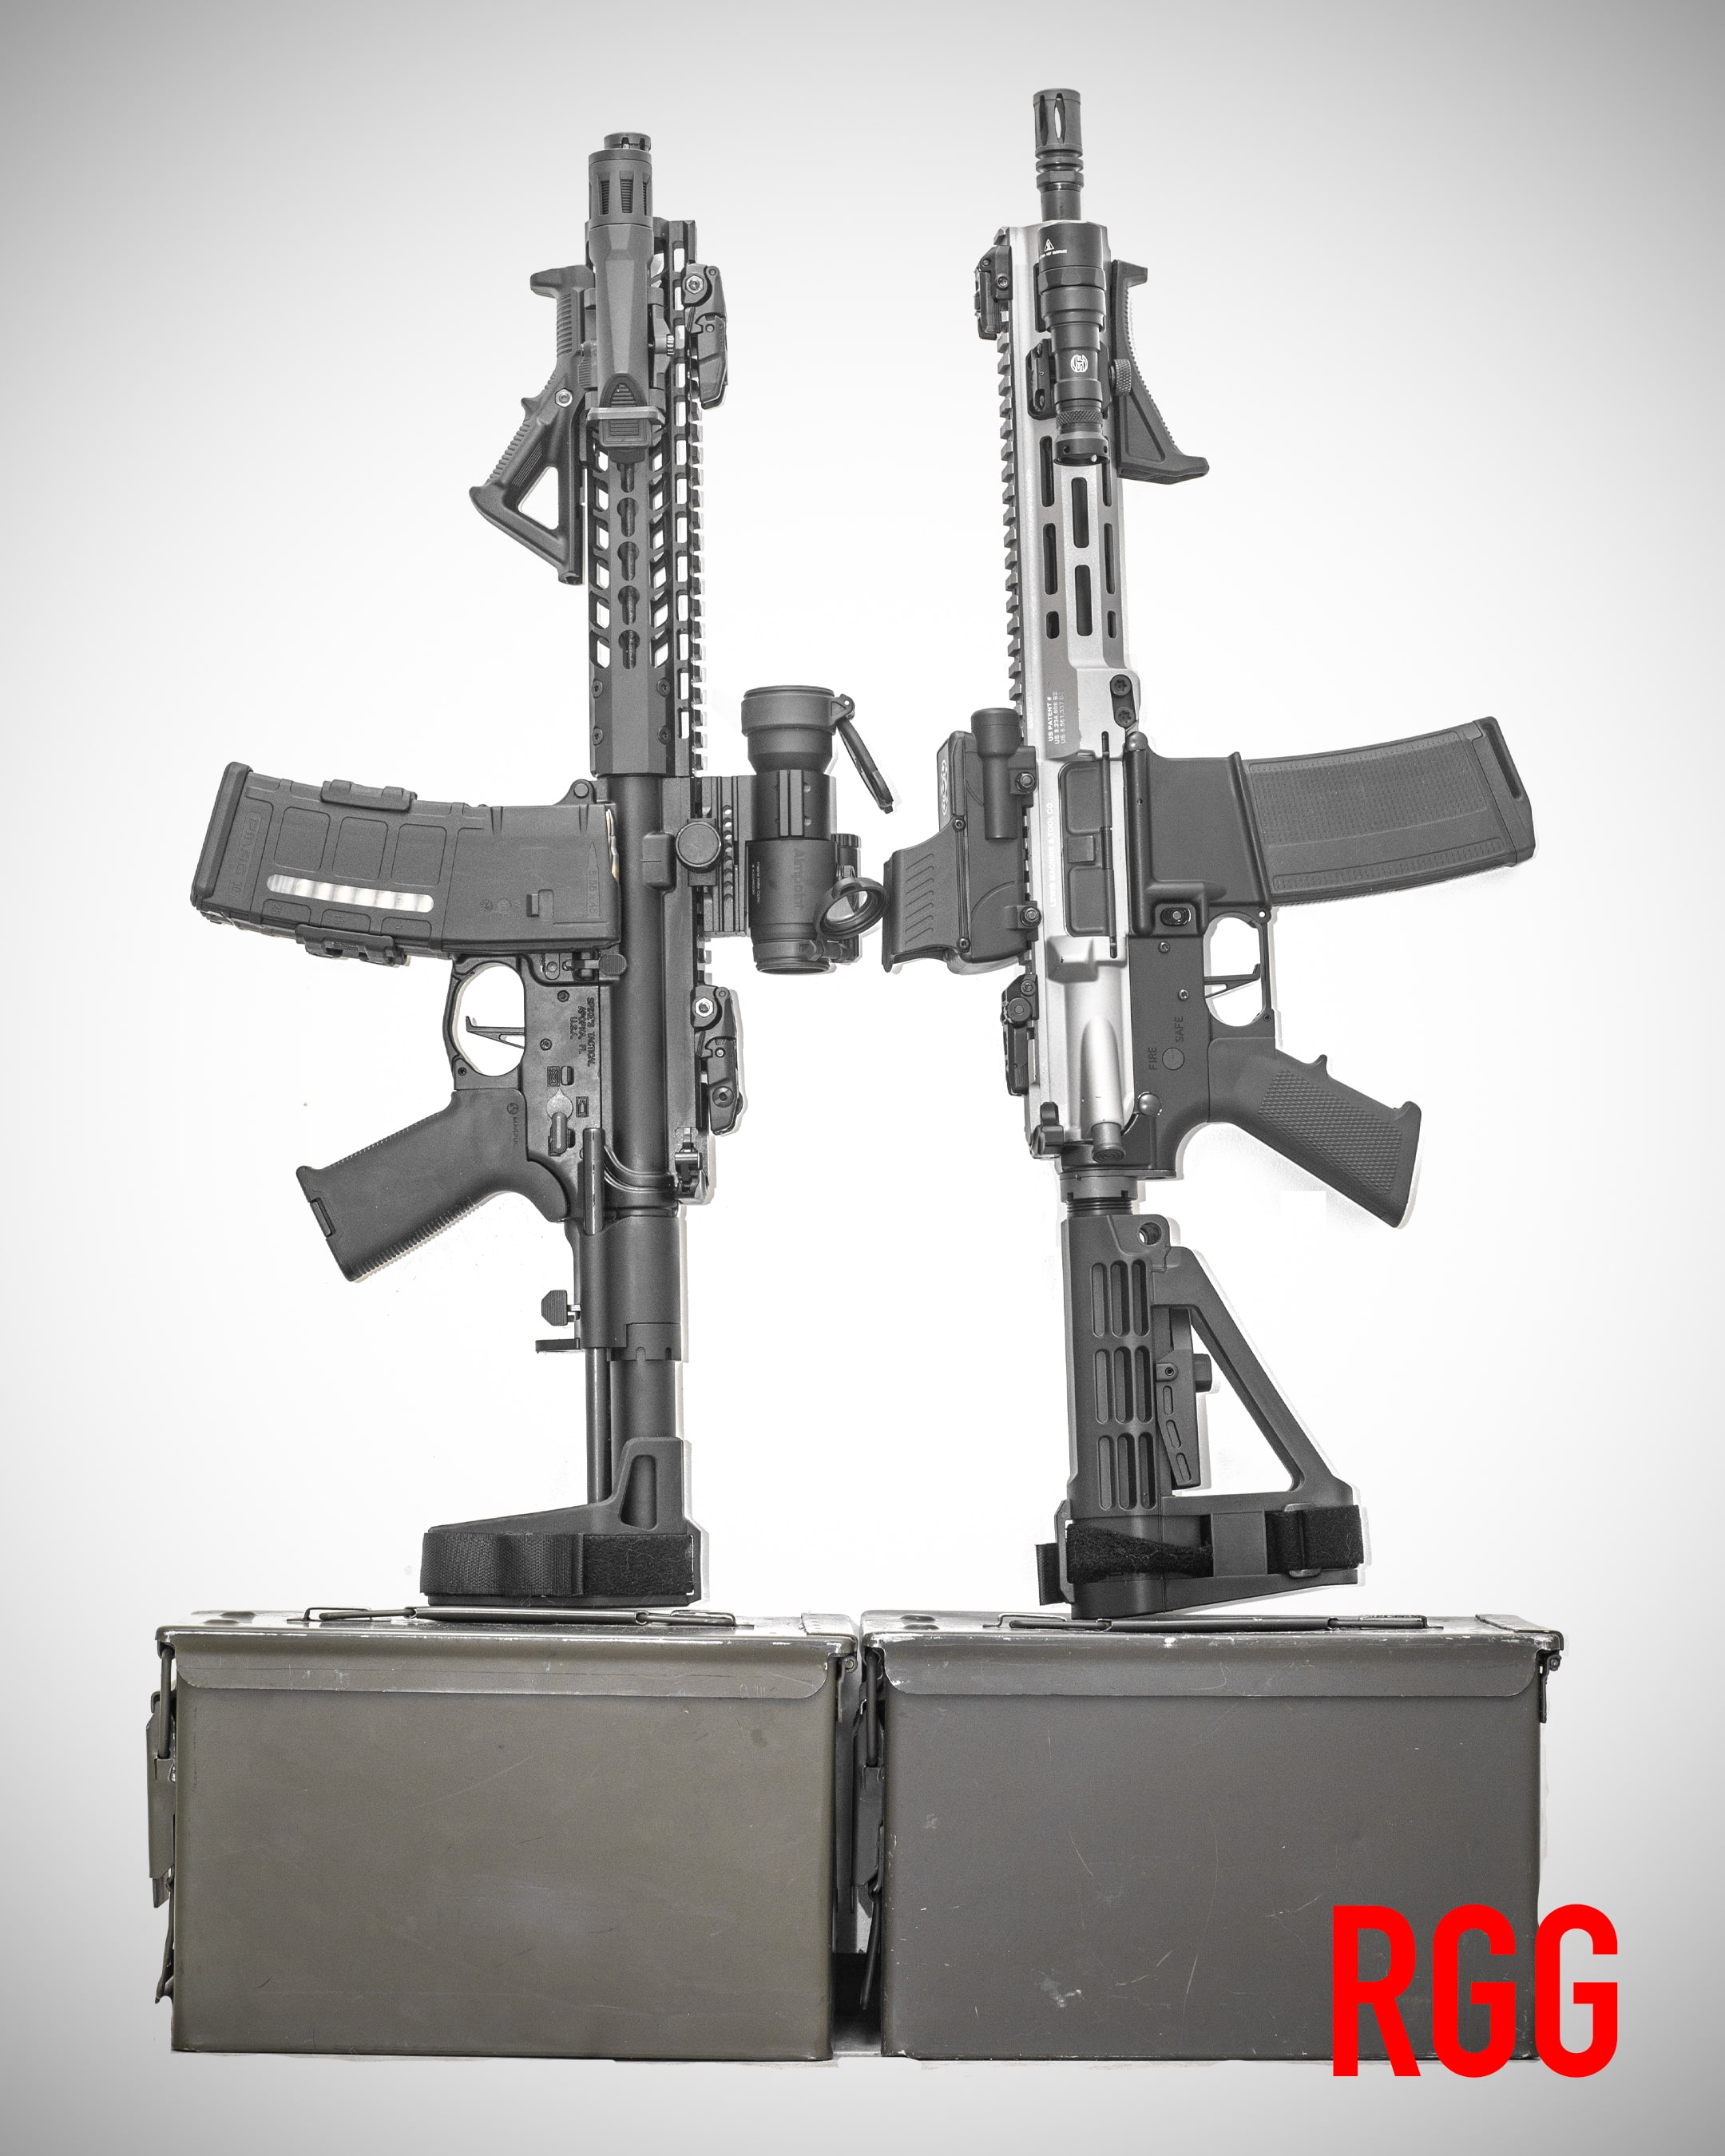 Two AR-15-style pistols.